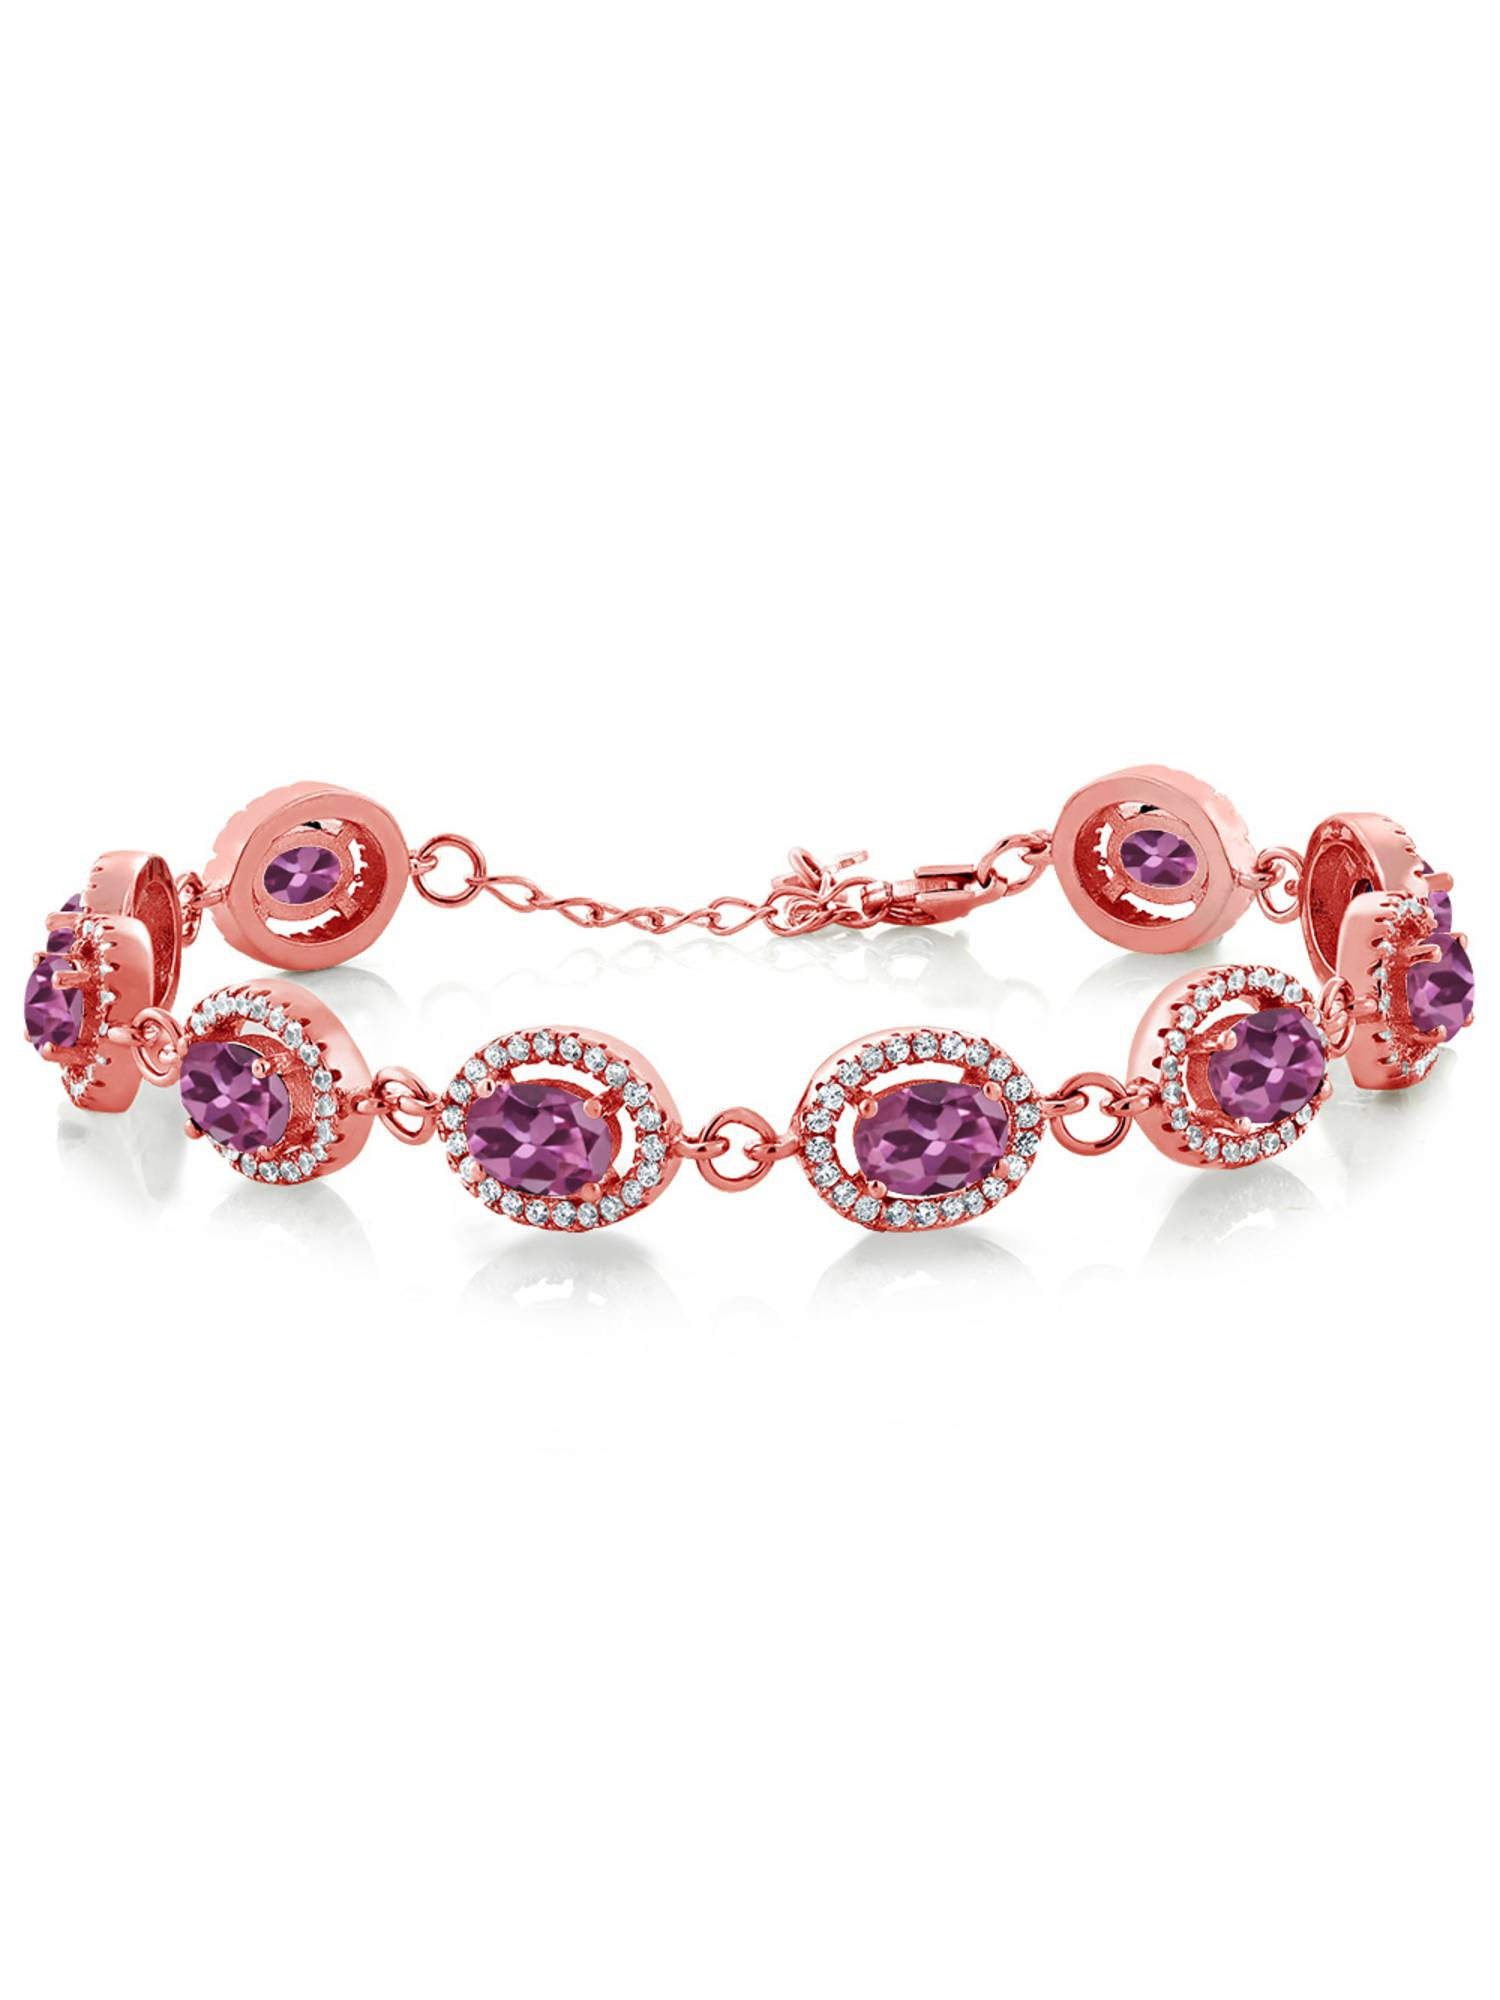 11.38 Ct Oval Pink Tourmaline 18K Rose Gold Plated Silver Bracelet by